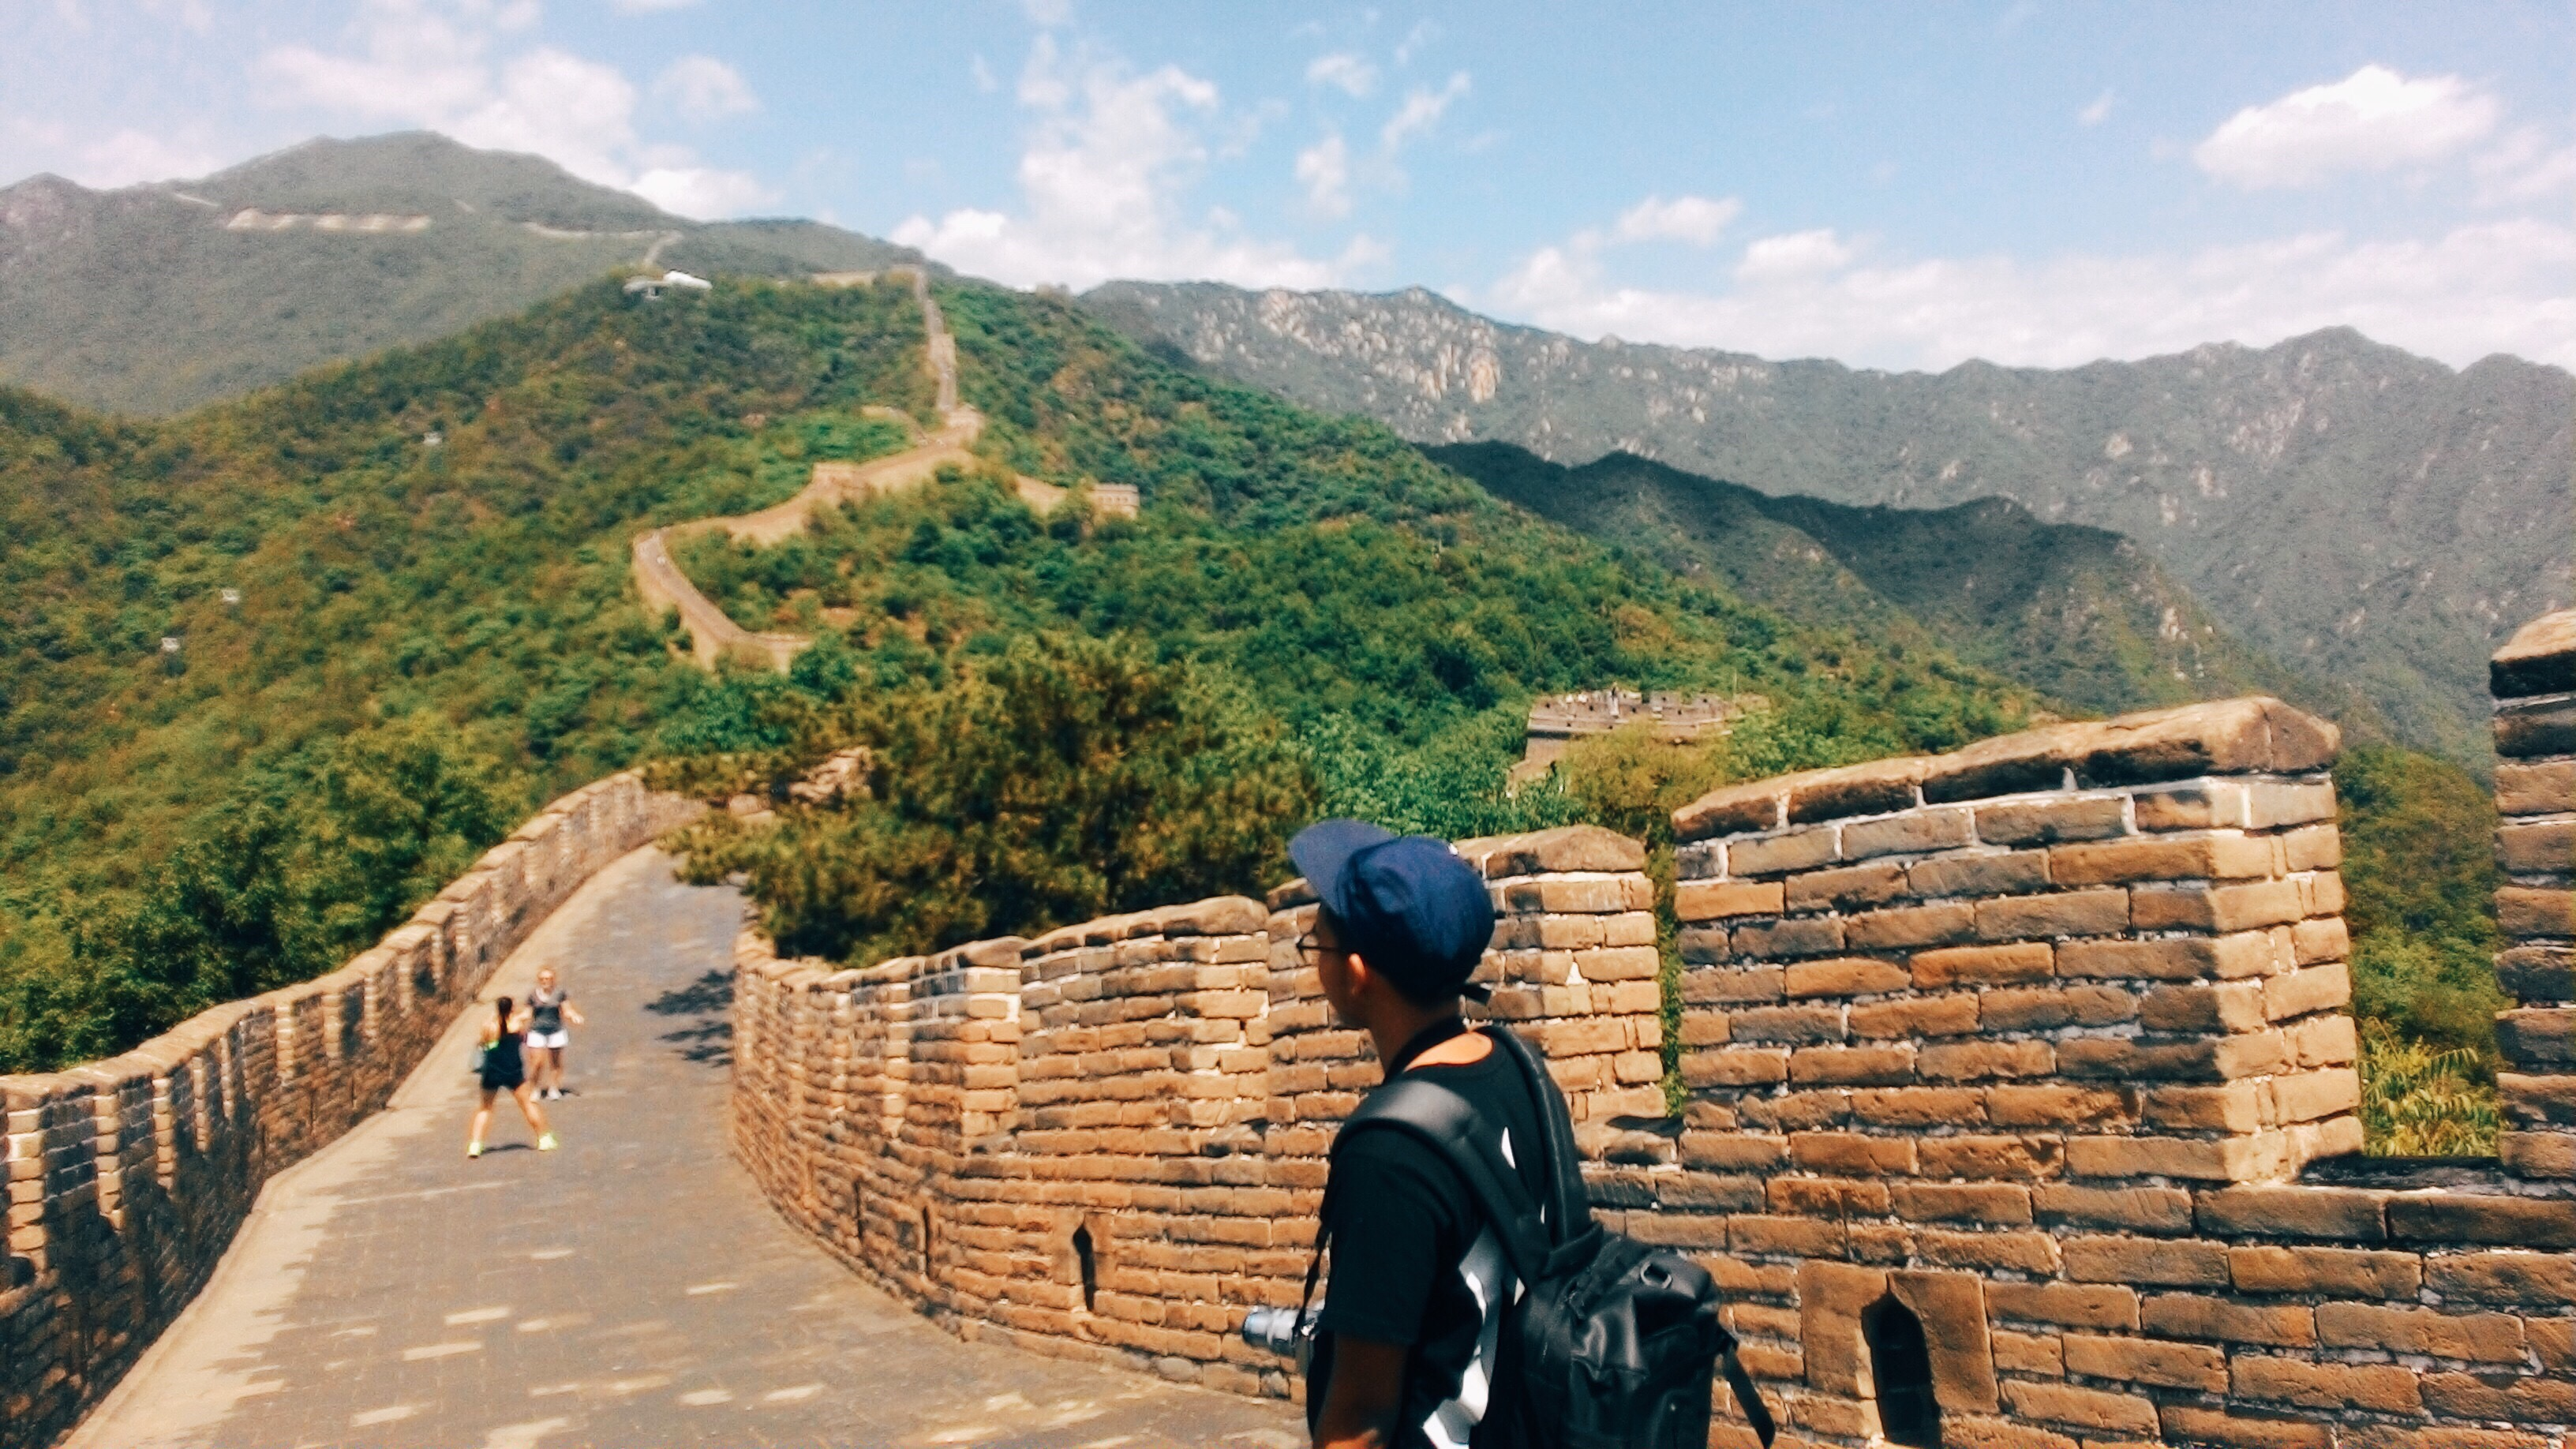 A day in The Great Wall.